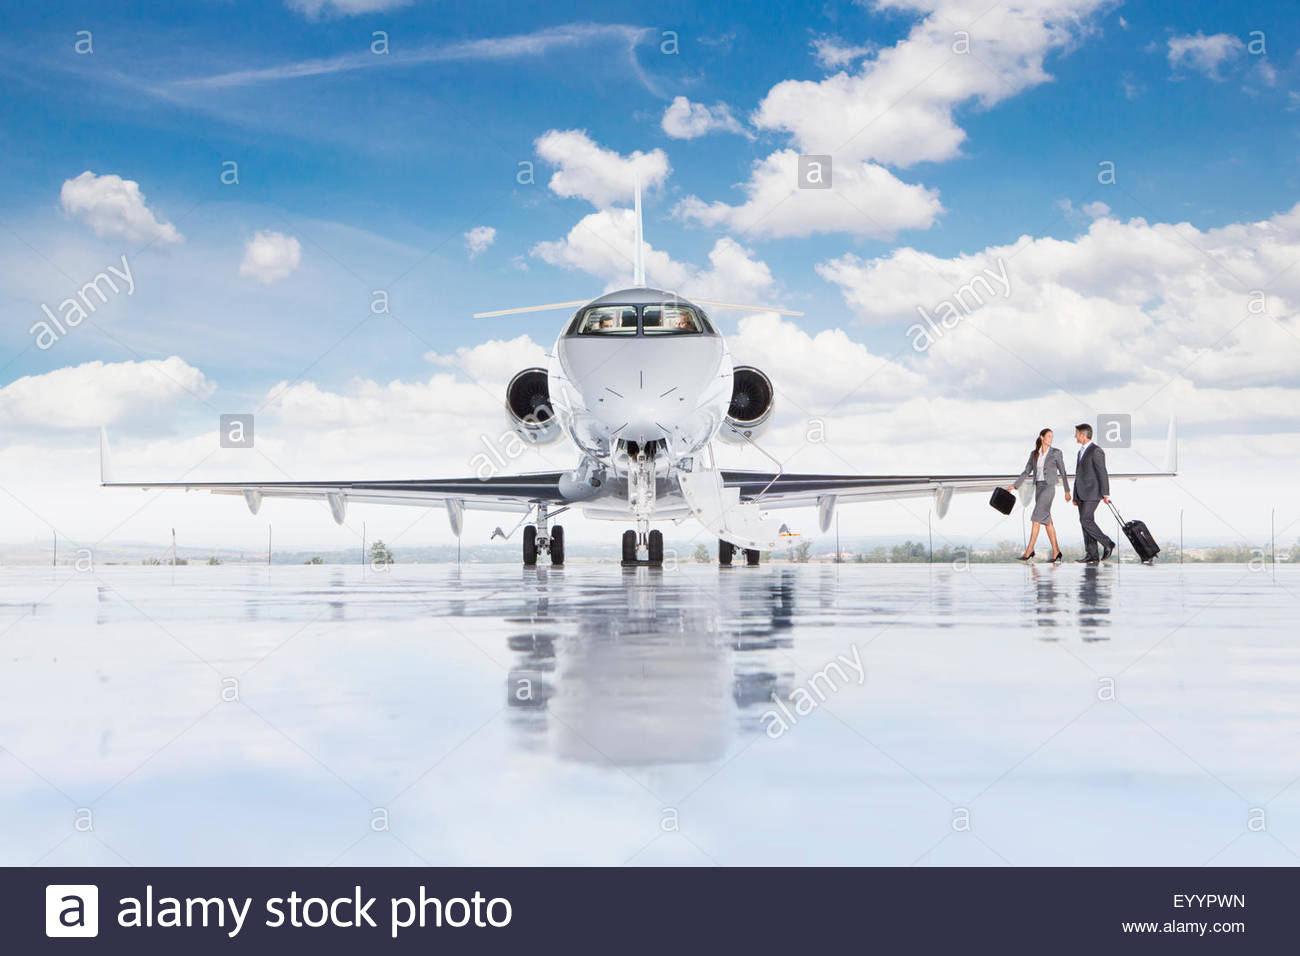 Businesswoman and Businessmen boarding private jet - Stock Image